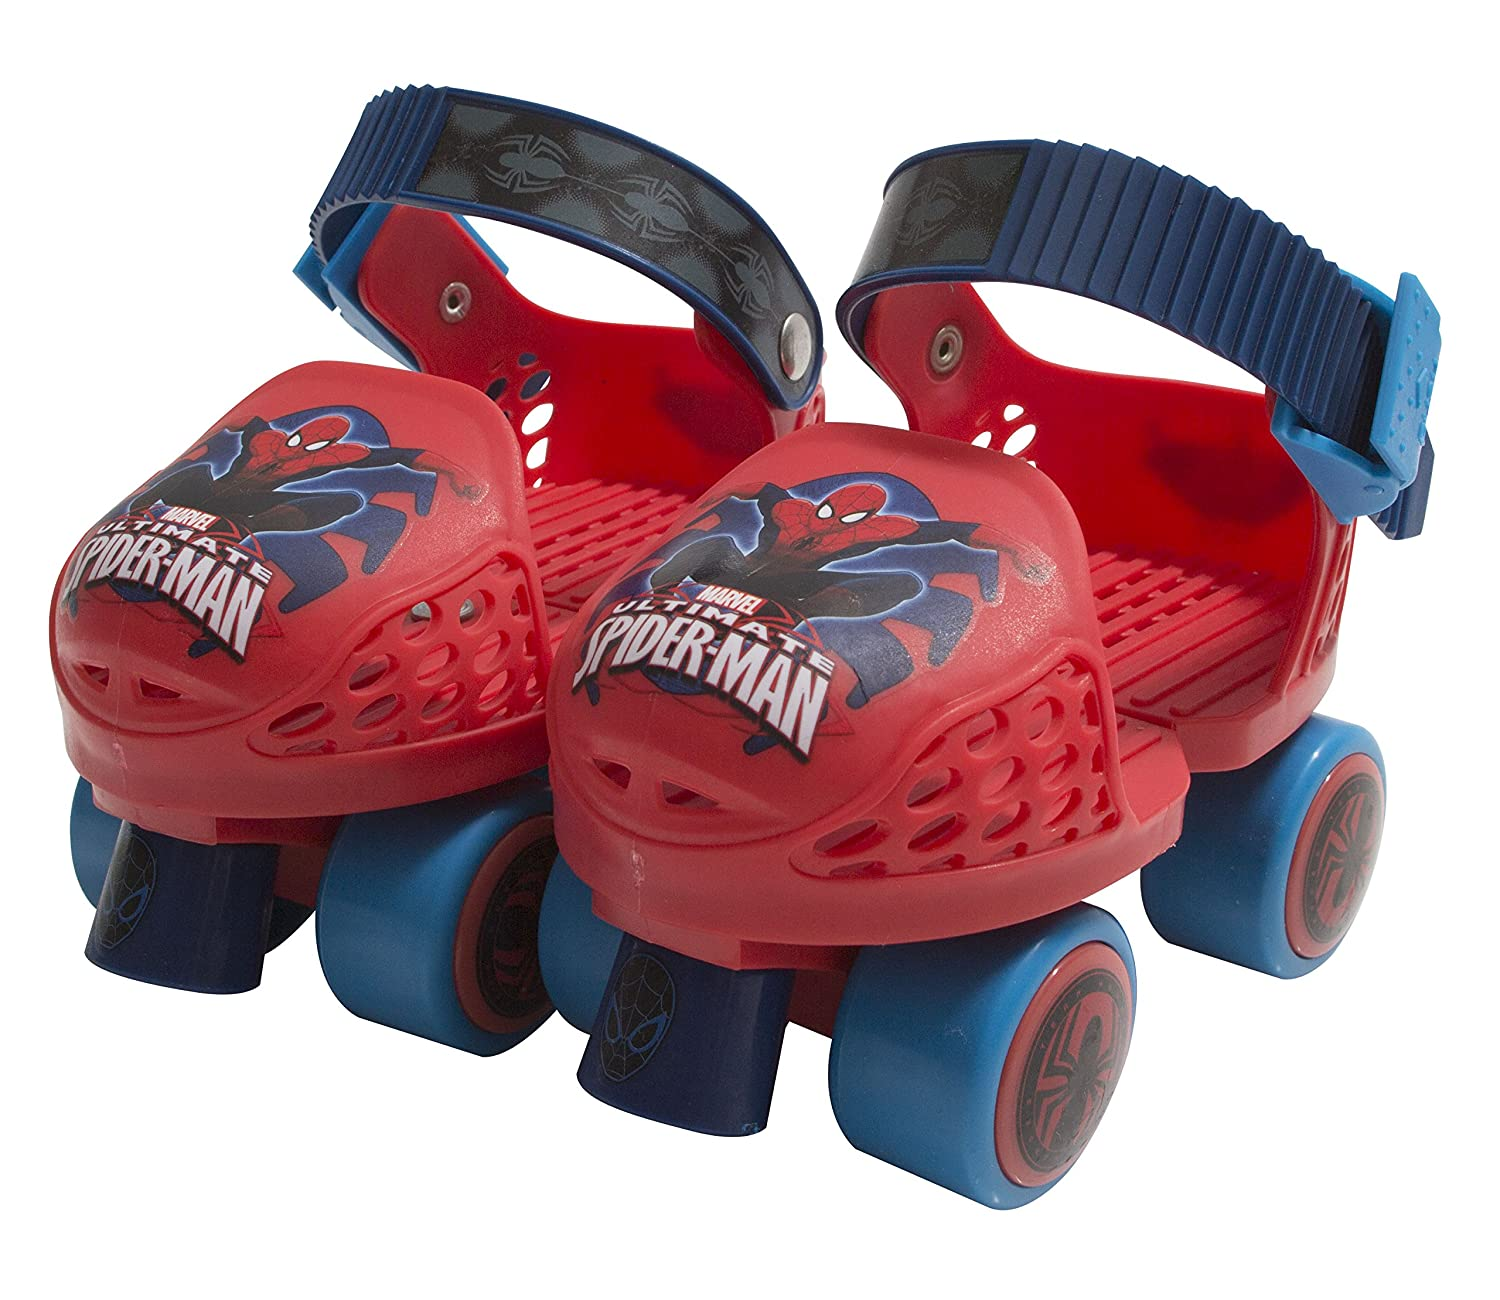 Amazon.com: PlayWheels Spider-Man Roller Skates with Knee Pads and Helmet, Junior Size 6-12: Toys & Games